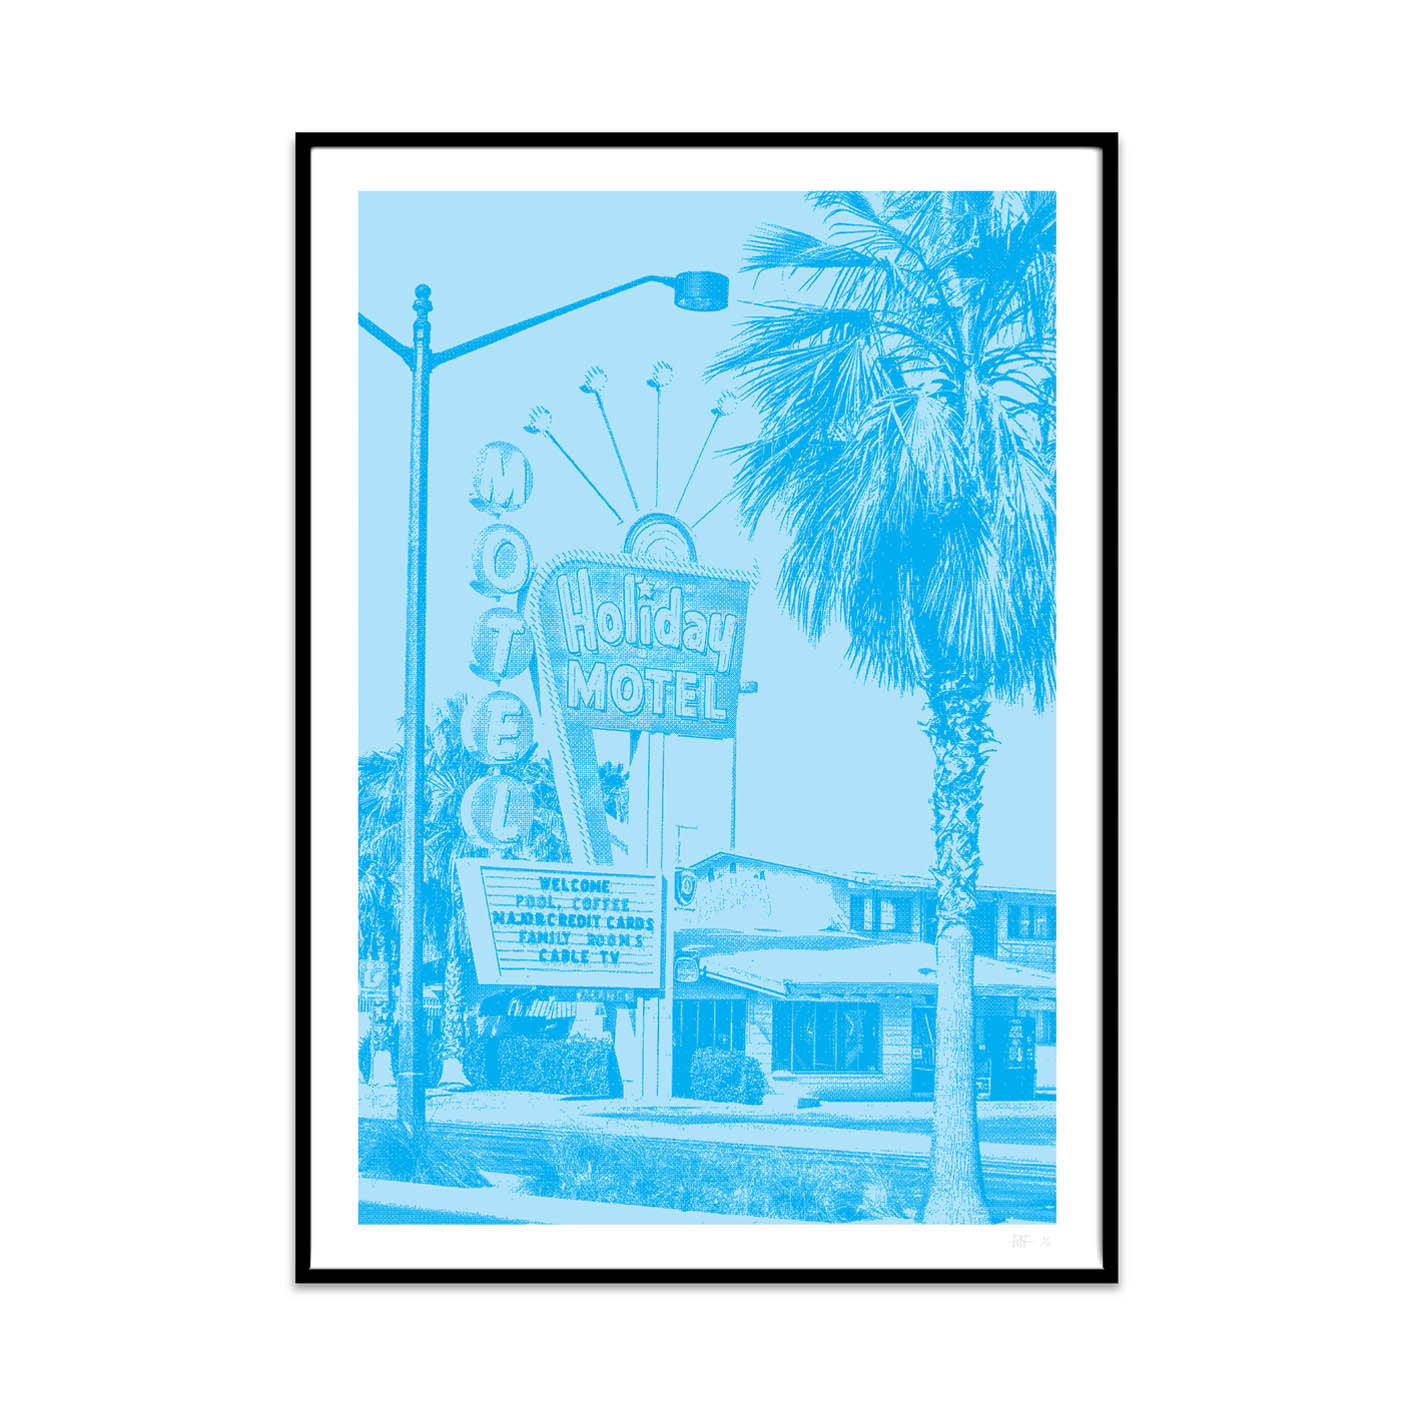 what Phil sees creates limited edition typography and photography high quality art prints. This prints is called the cyan motel.